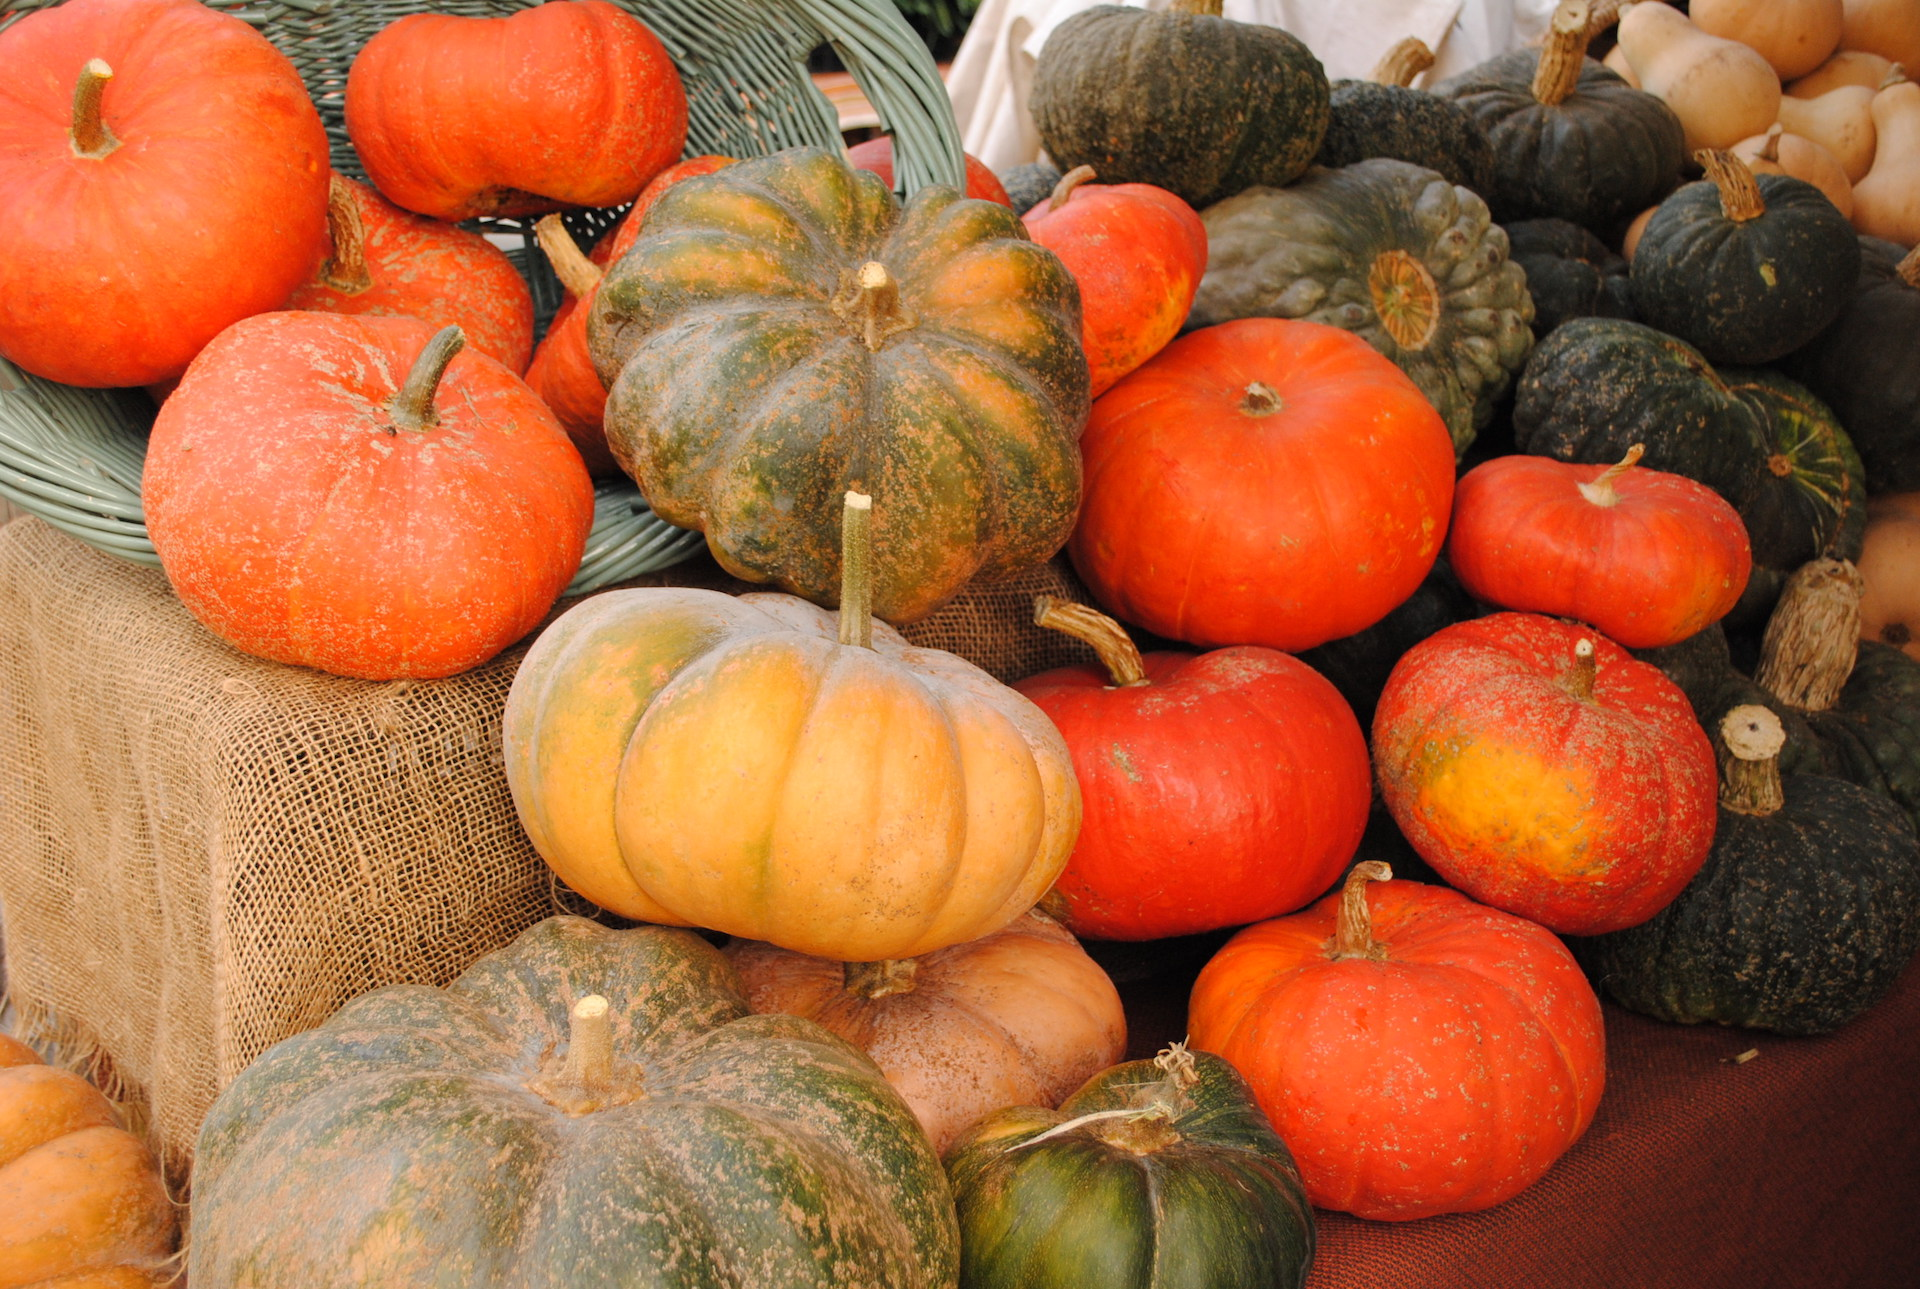 A colorful assortment of winter squash